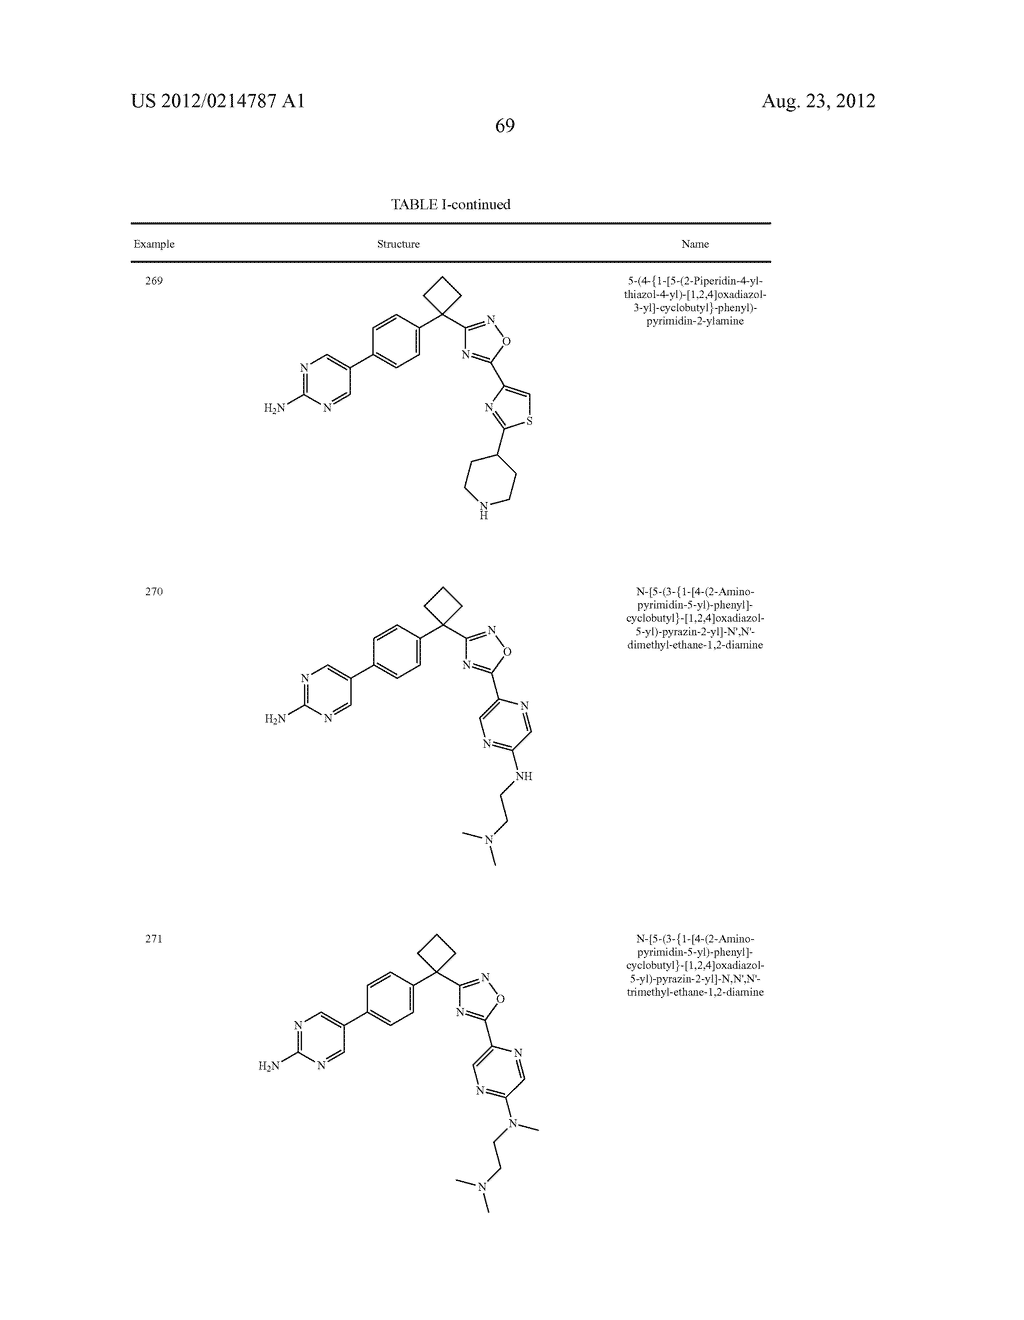 OXADIAZOLE INHIBITORS OF LEUKOTRIENE PRODUCTION - diagram, schematic, and image 70